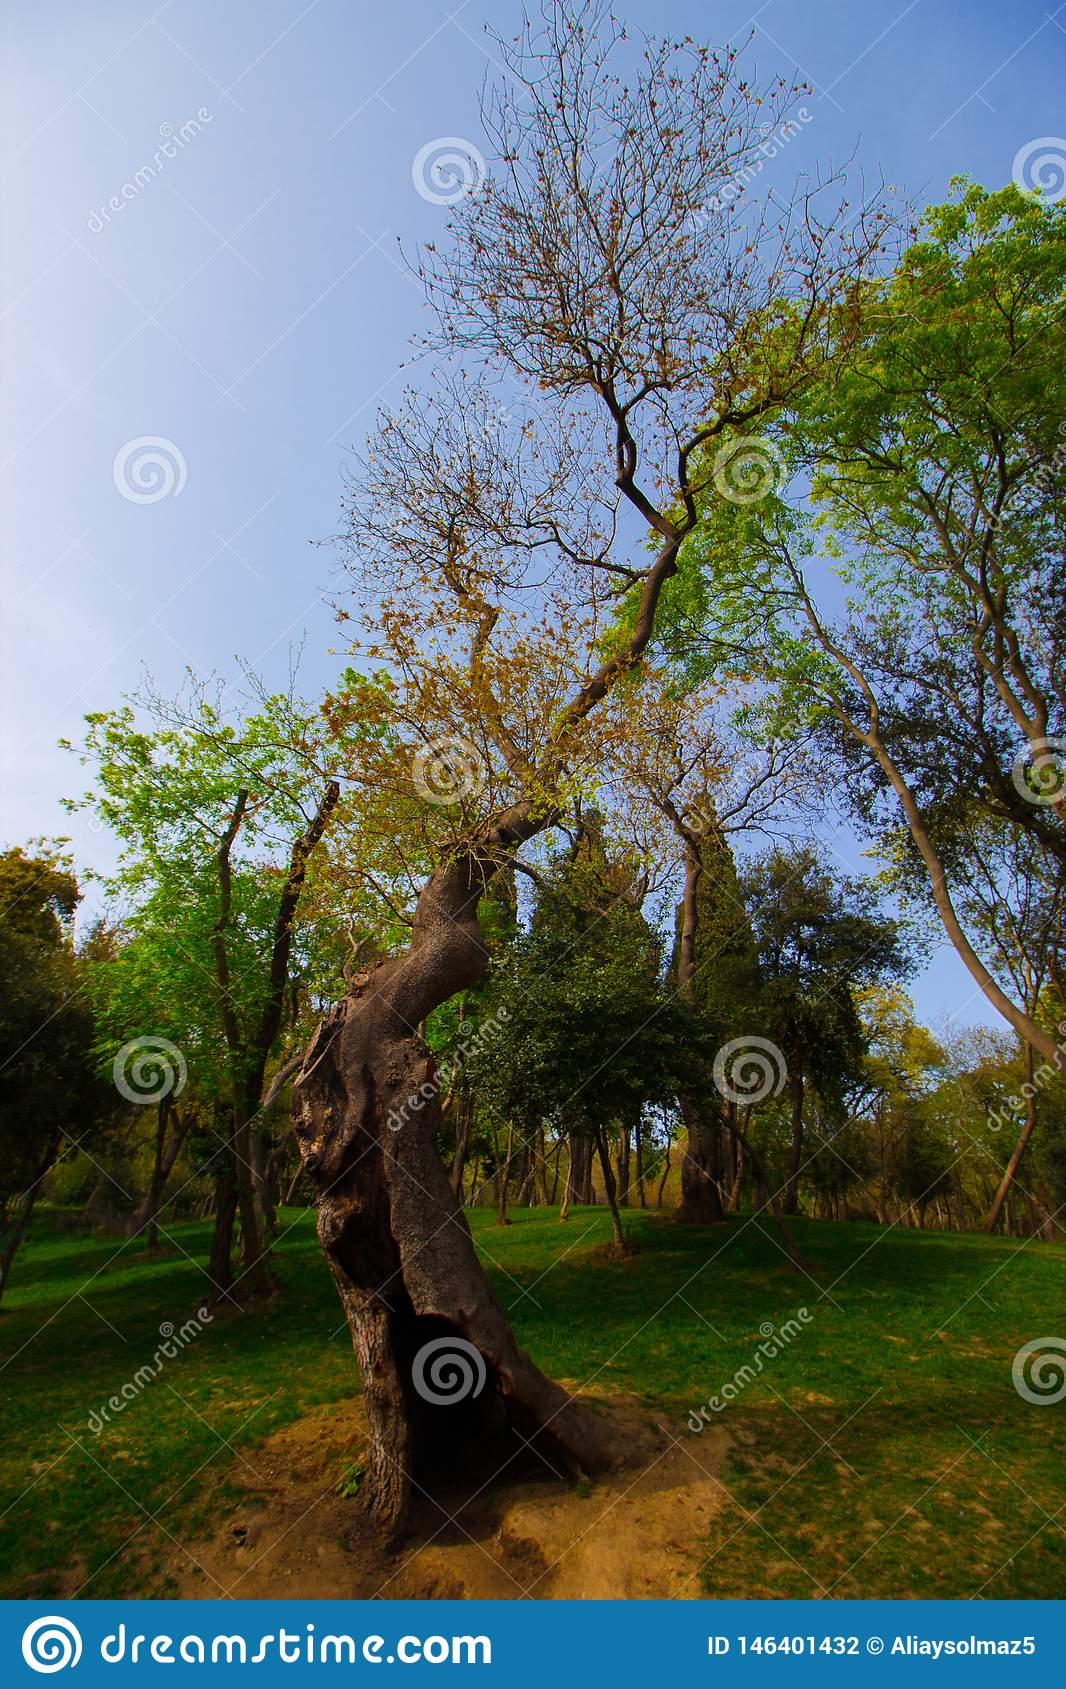 Tale Tree, Charming Tree, Spring Time For Turkey, Grassy Field